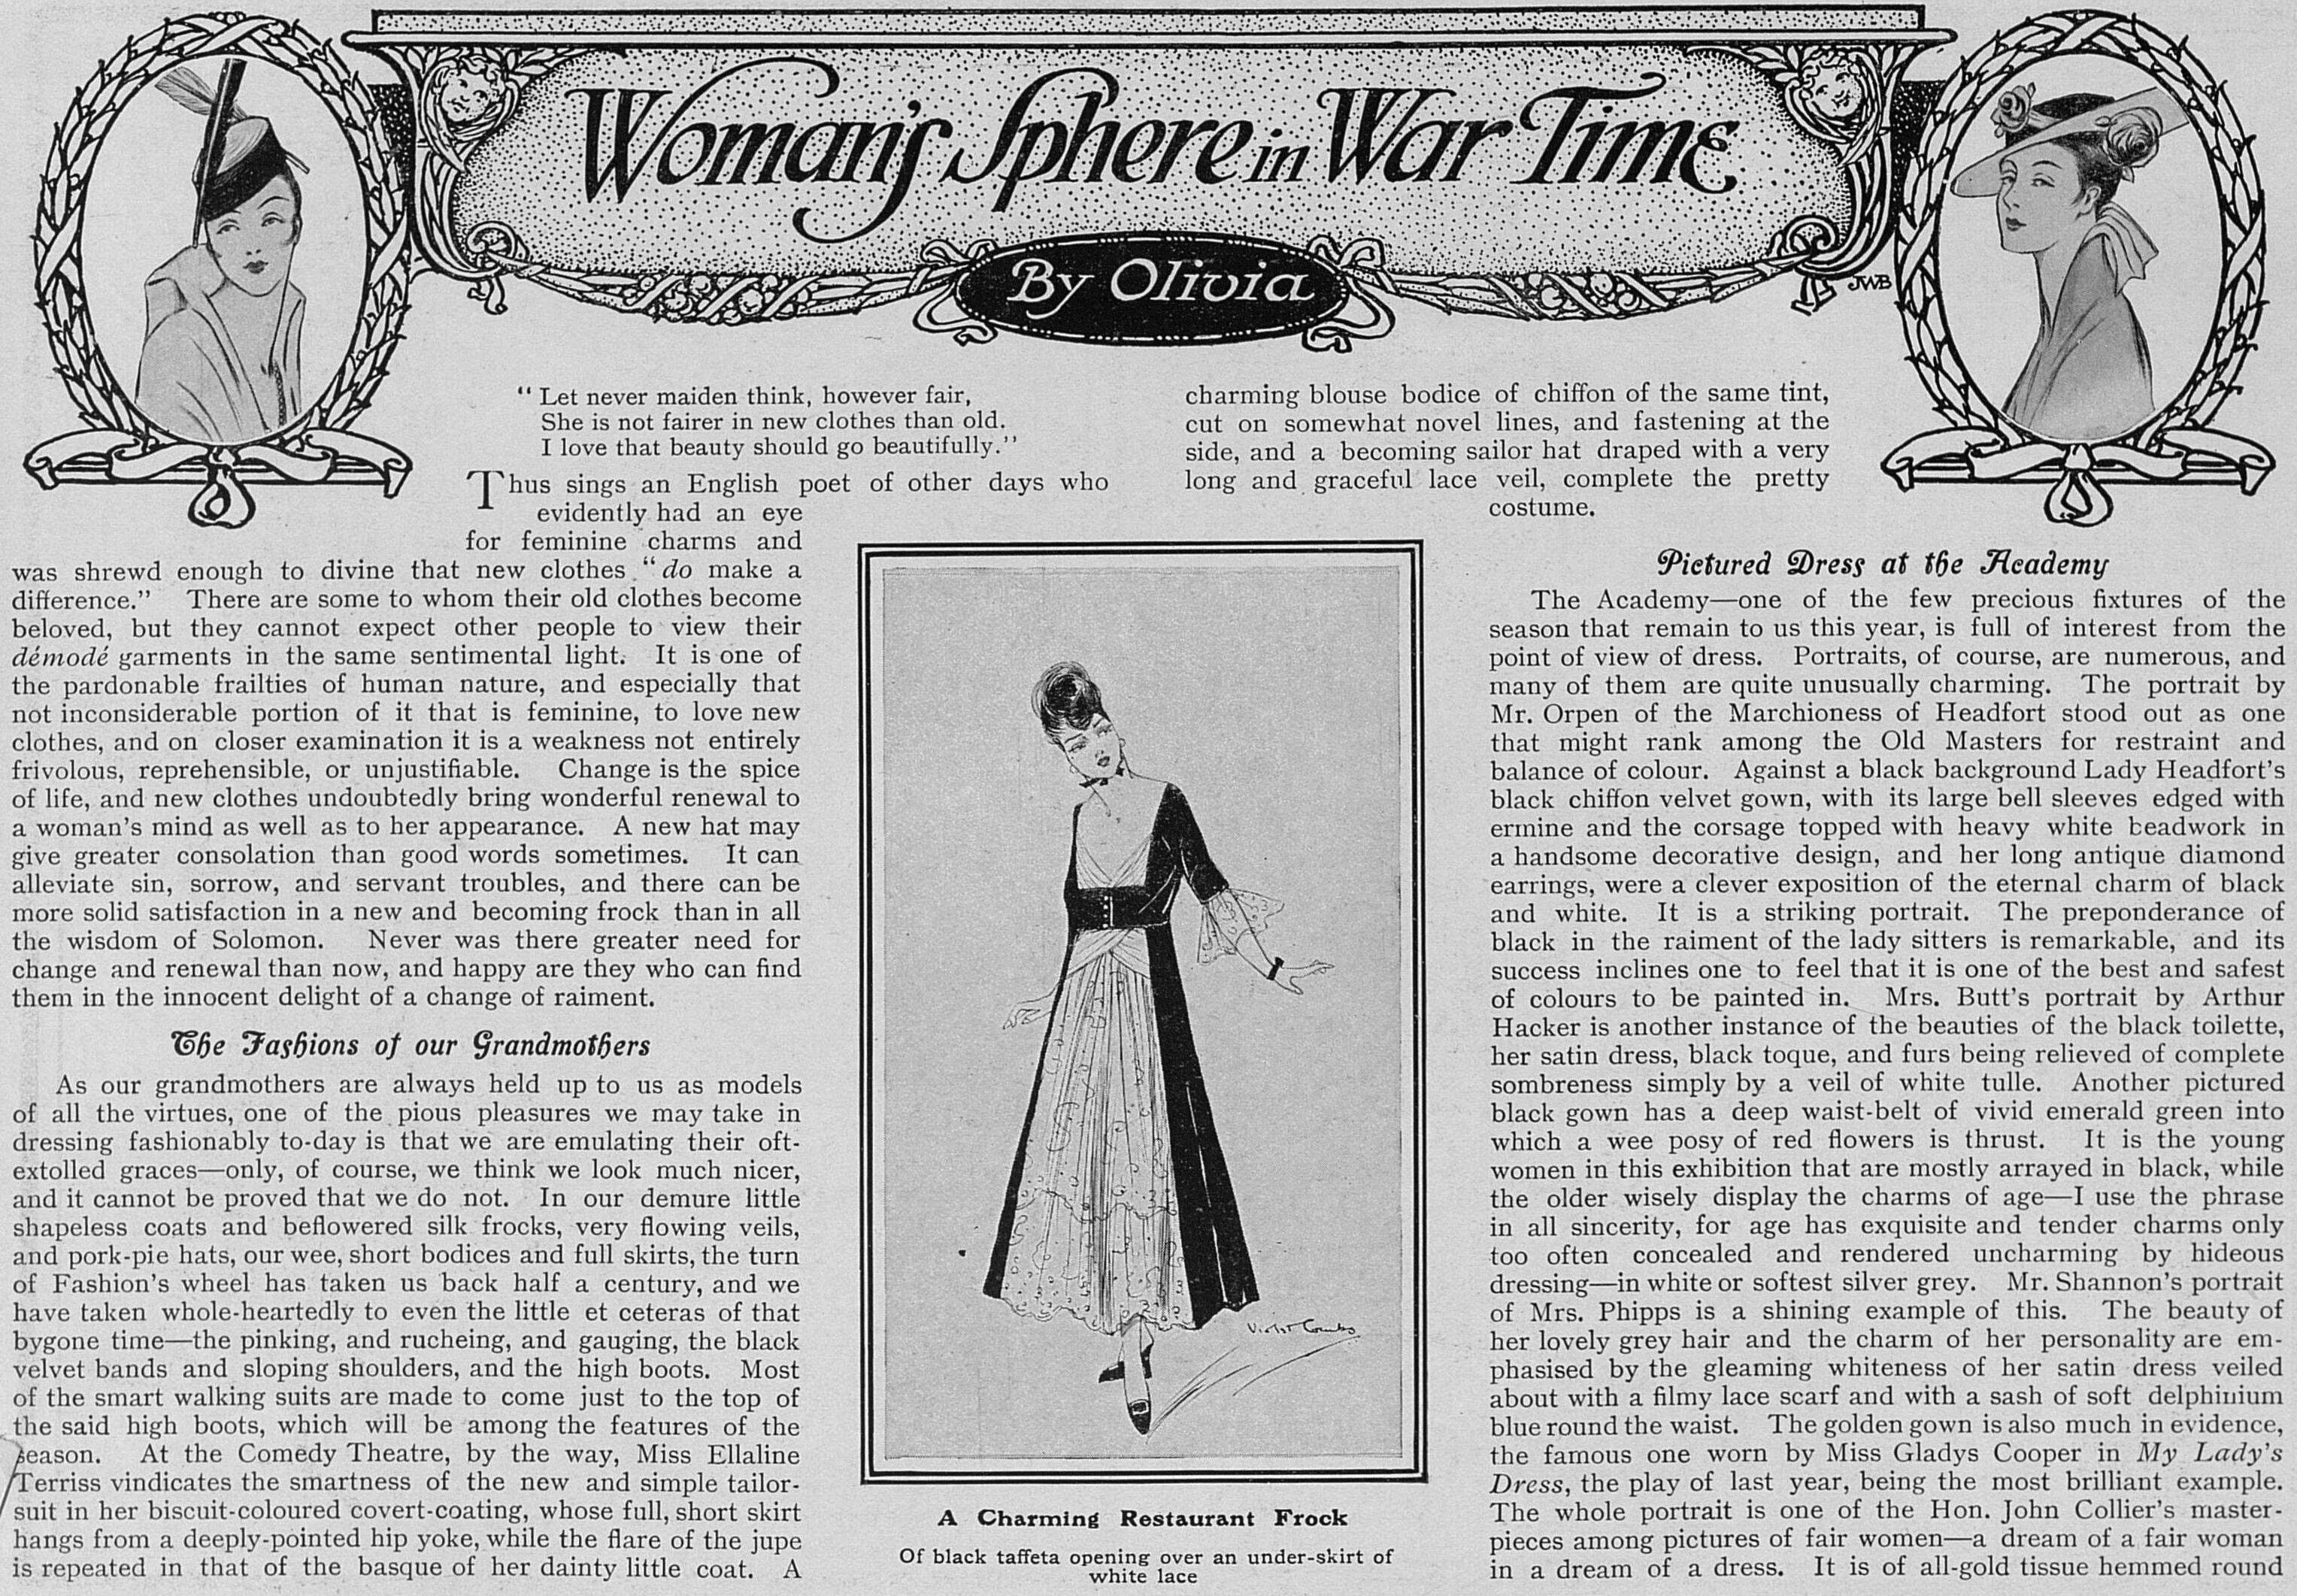 WomansSphereInWarTime_15May1915